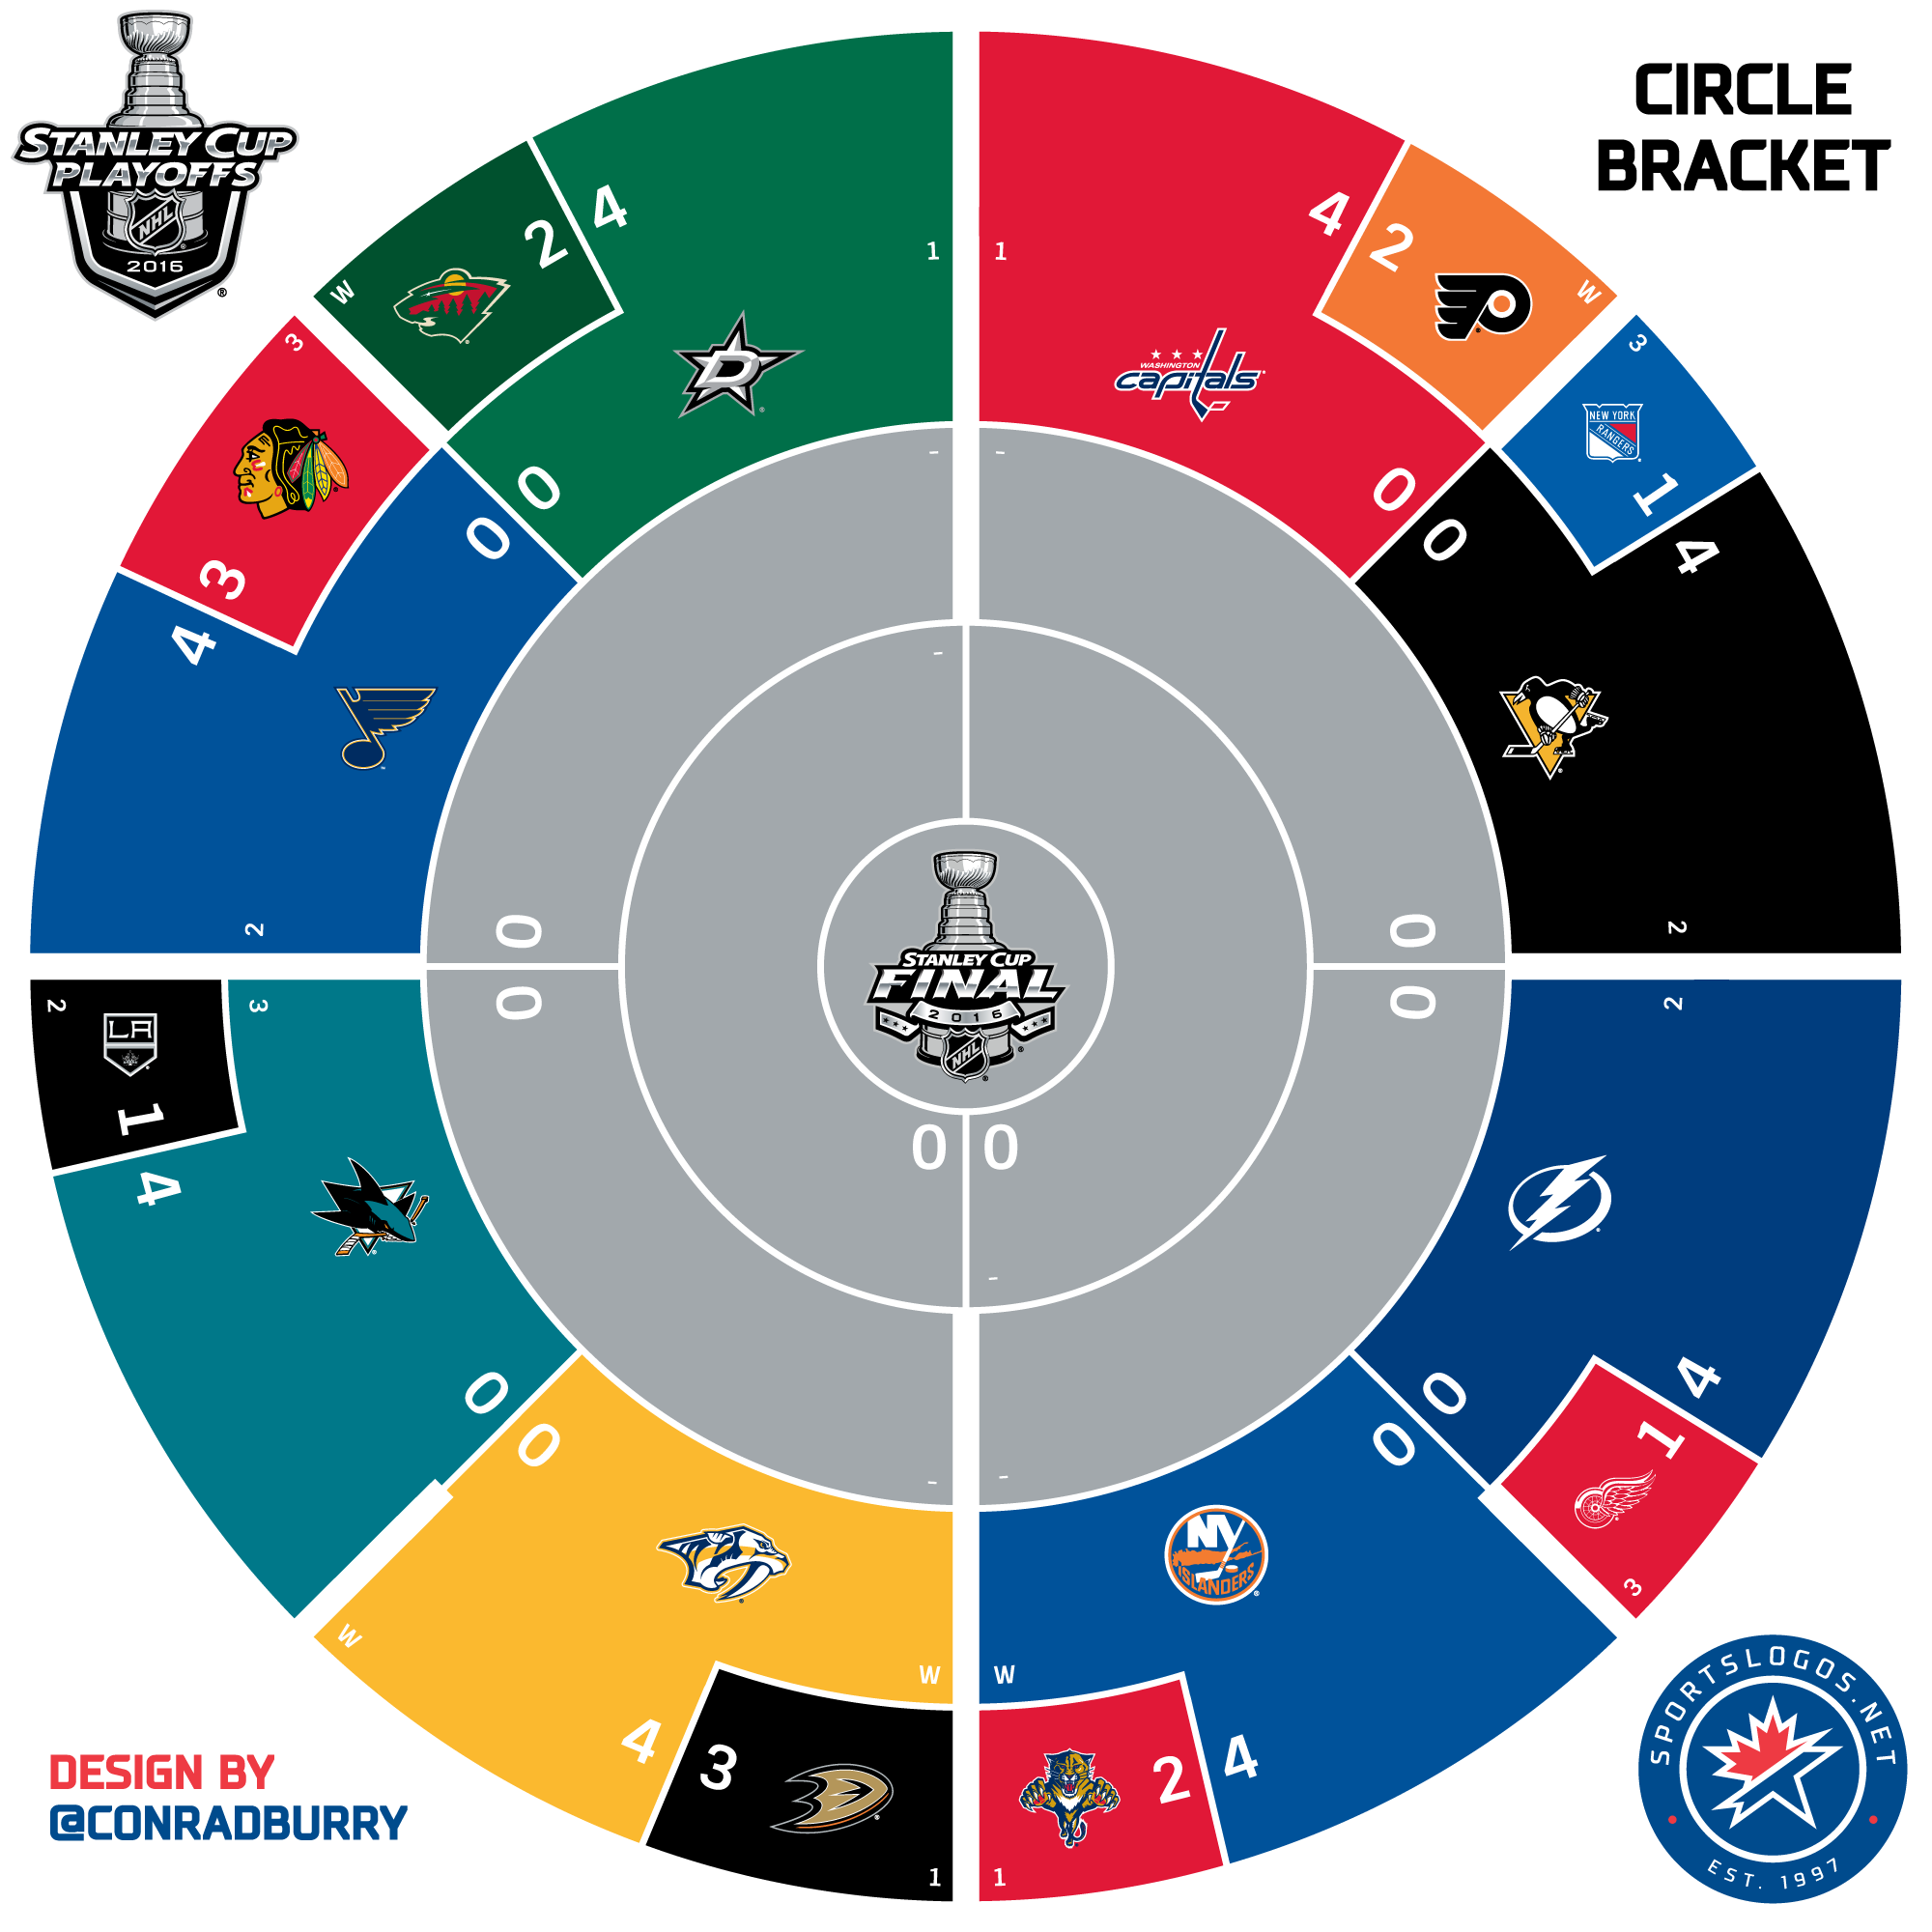 It's just an image of Accomplished Printable Nhl Bracket